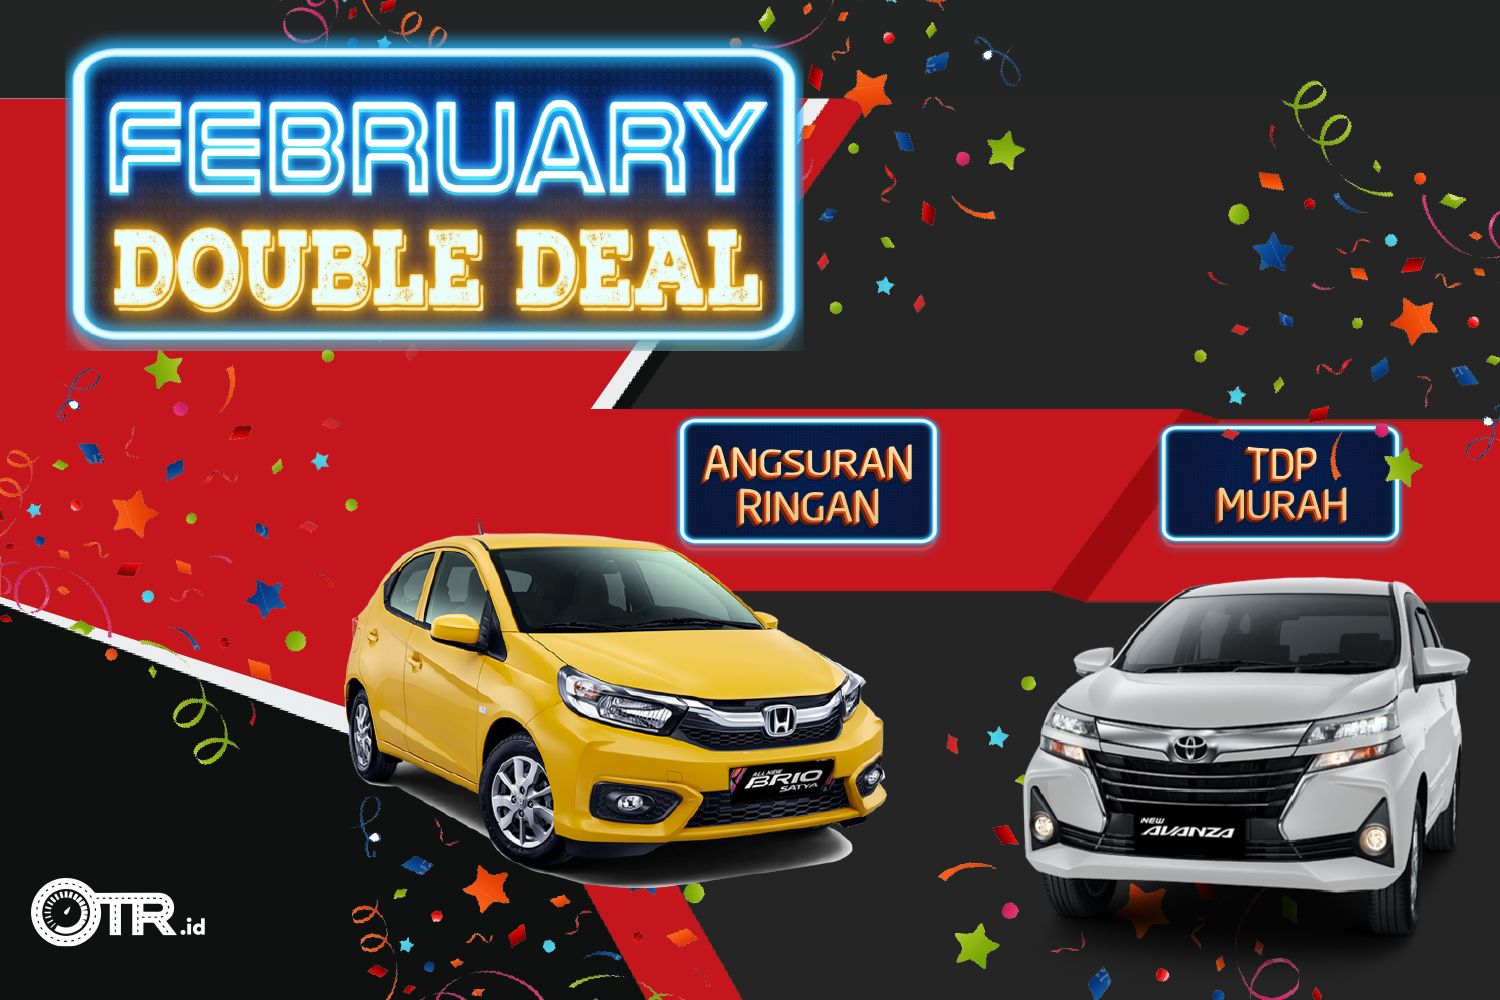 Promo February Double Deal OTR.id